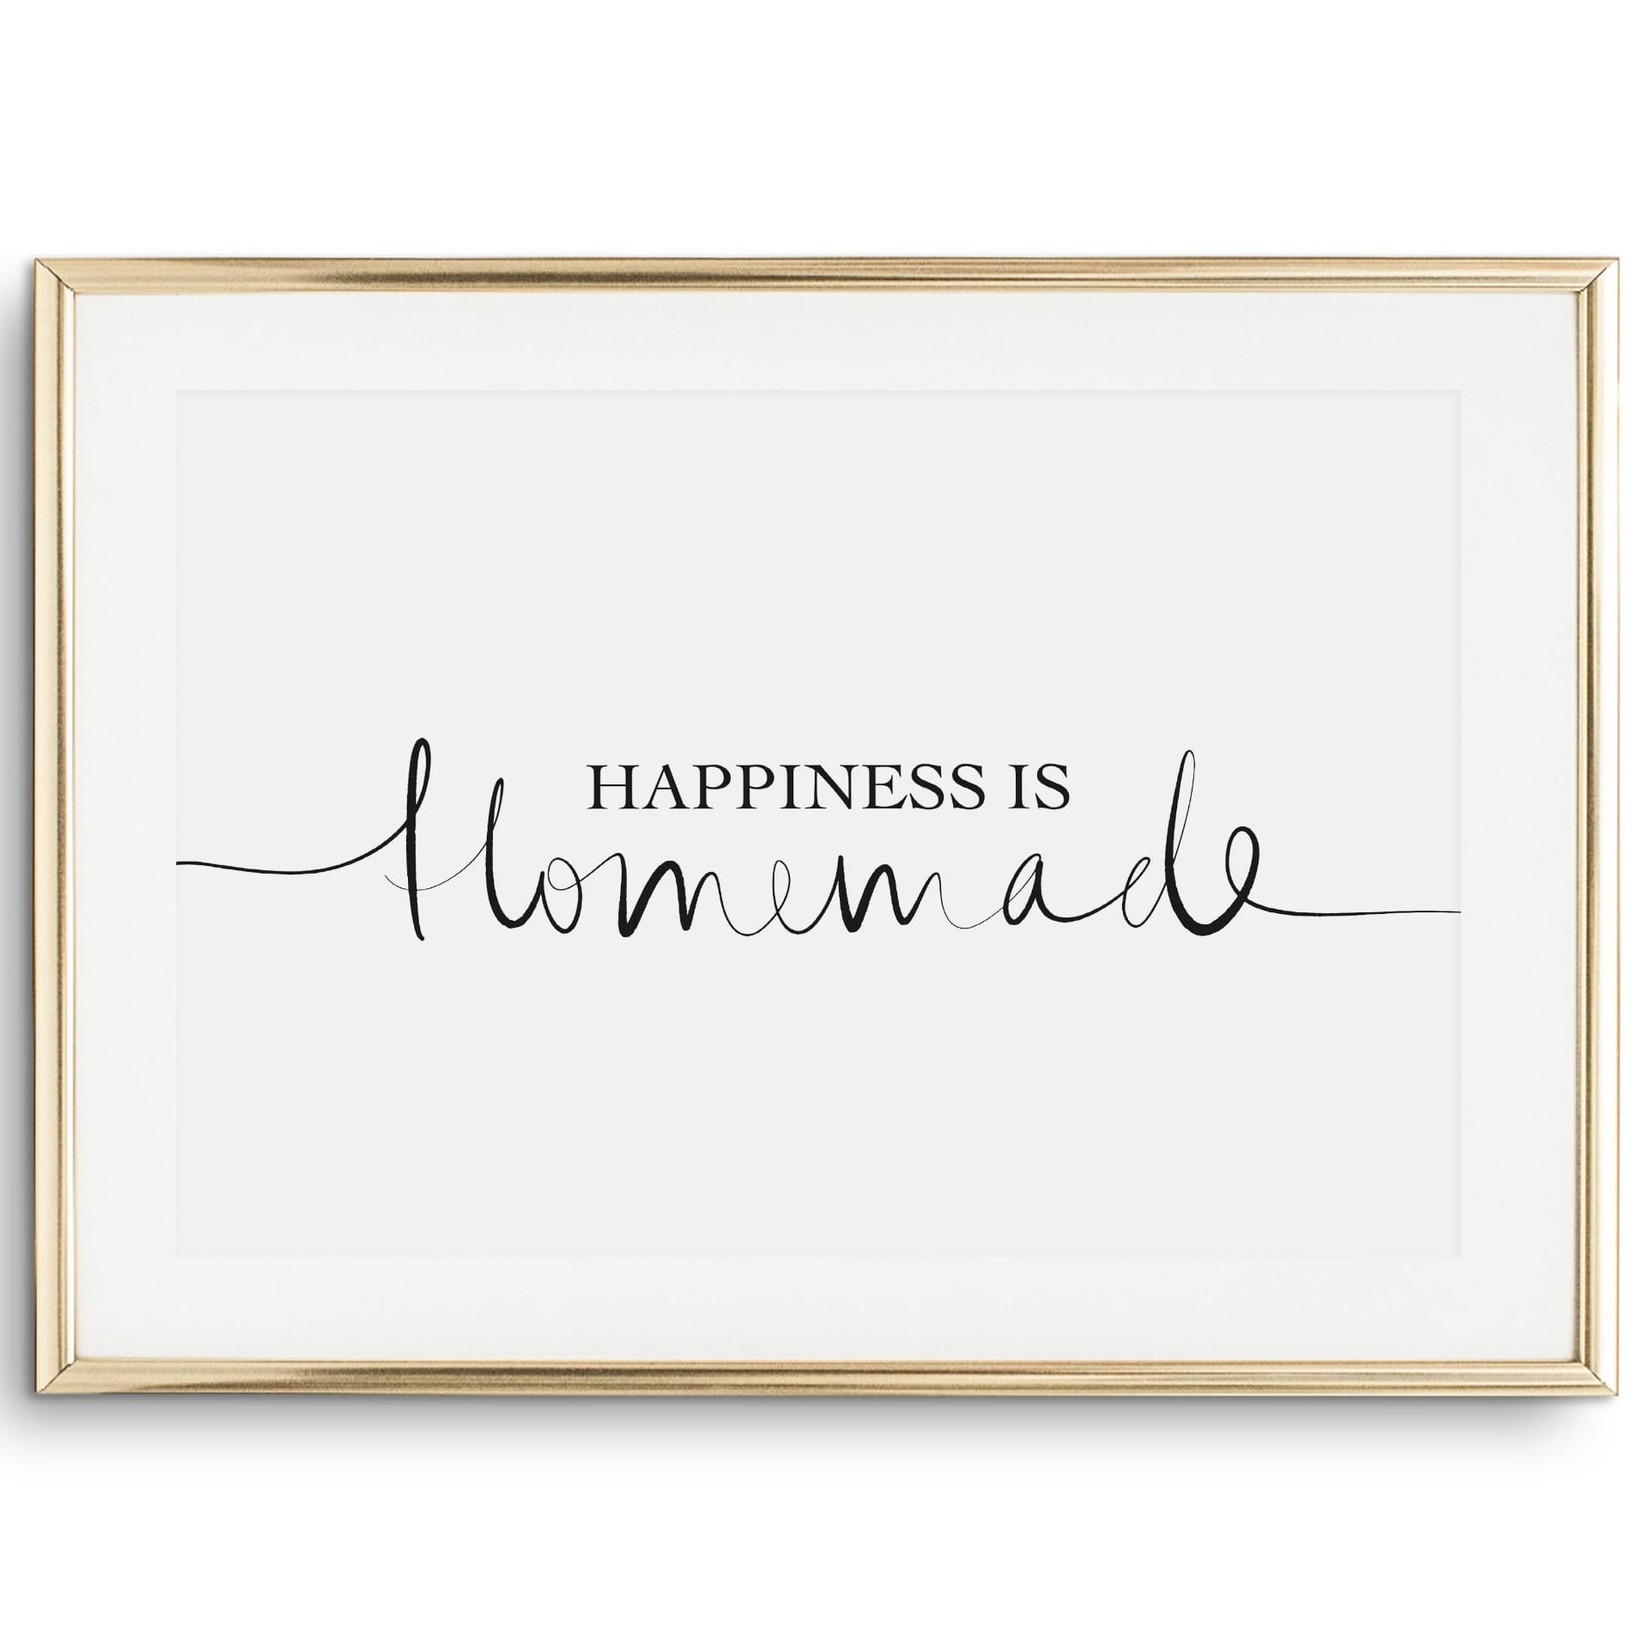 Tales by Jen Poster - Happiness is homemade - A4 formaat